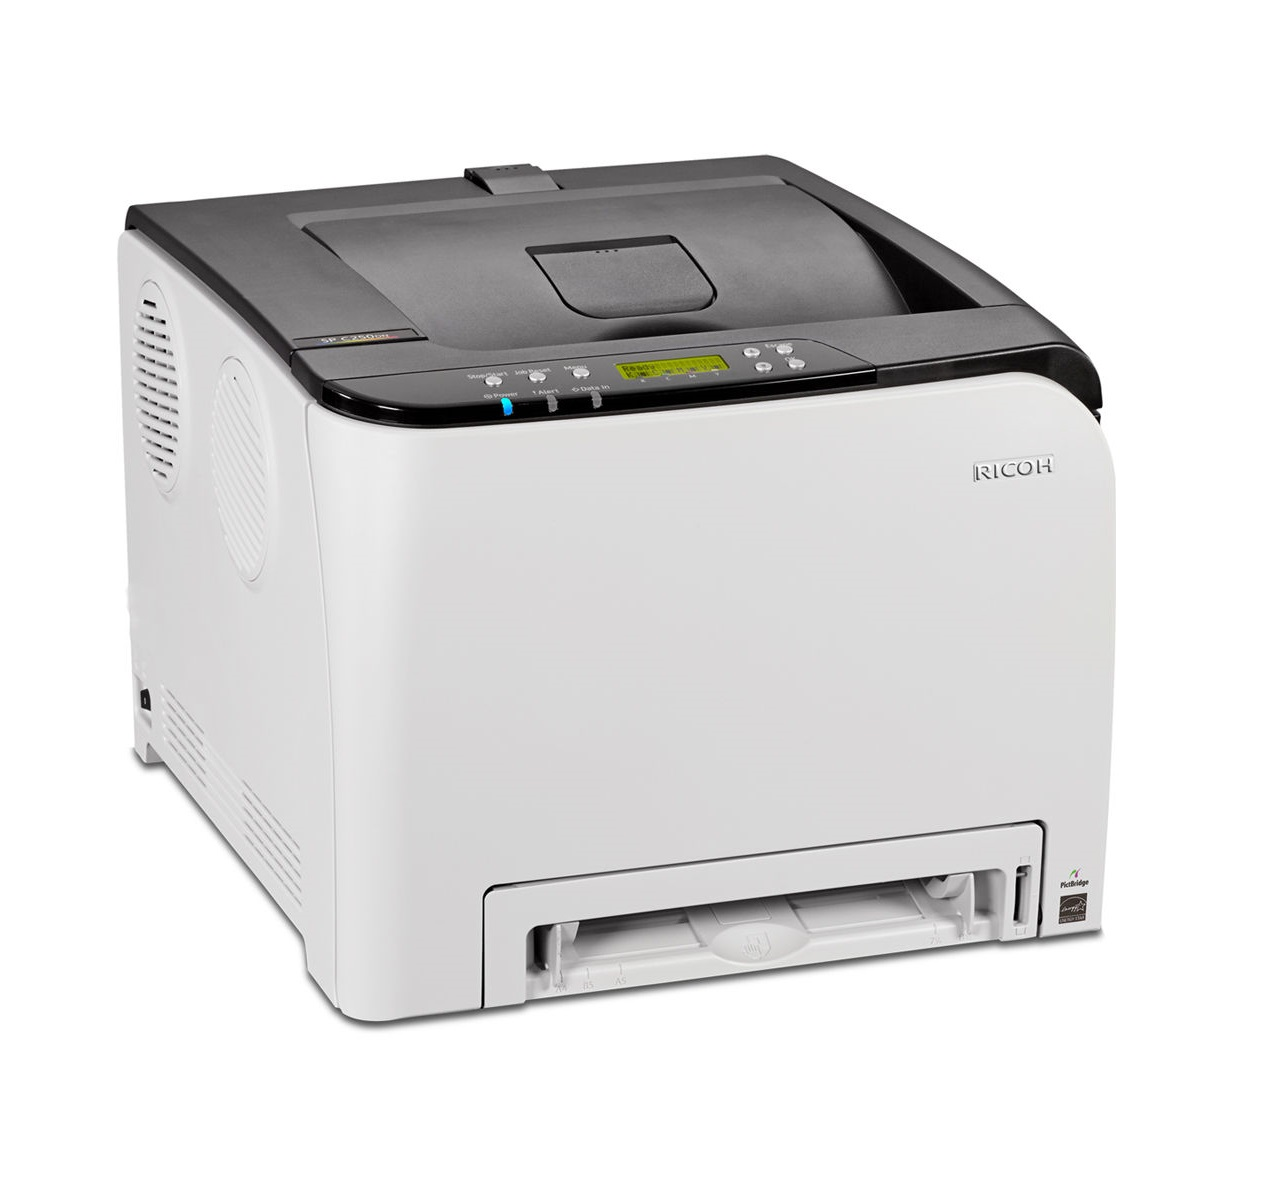 https://tryamm.ro/ro/products/office-printers-fax-scanners/imprimante-a4/